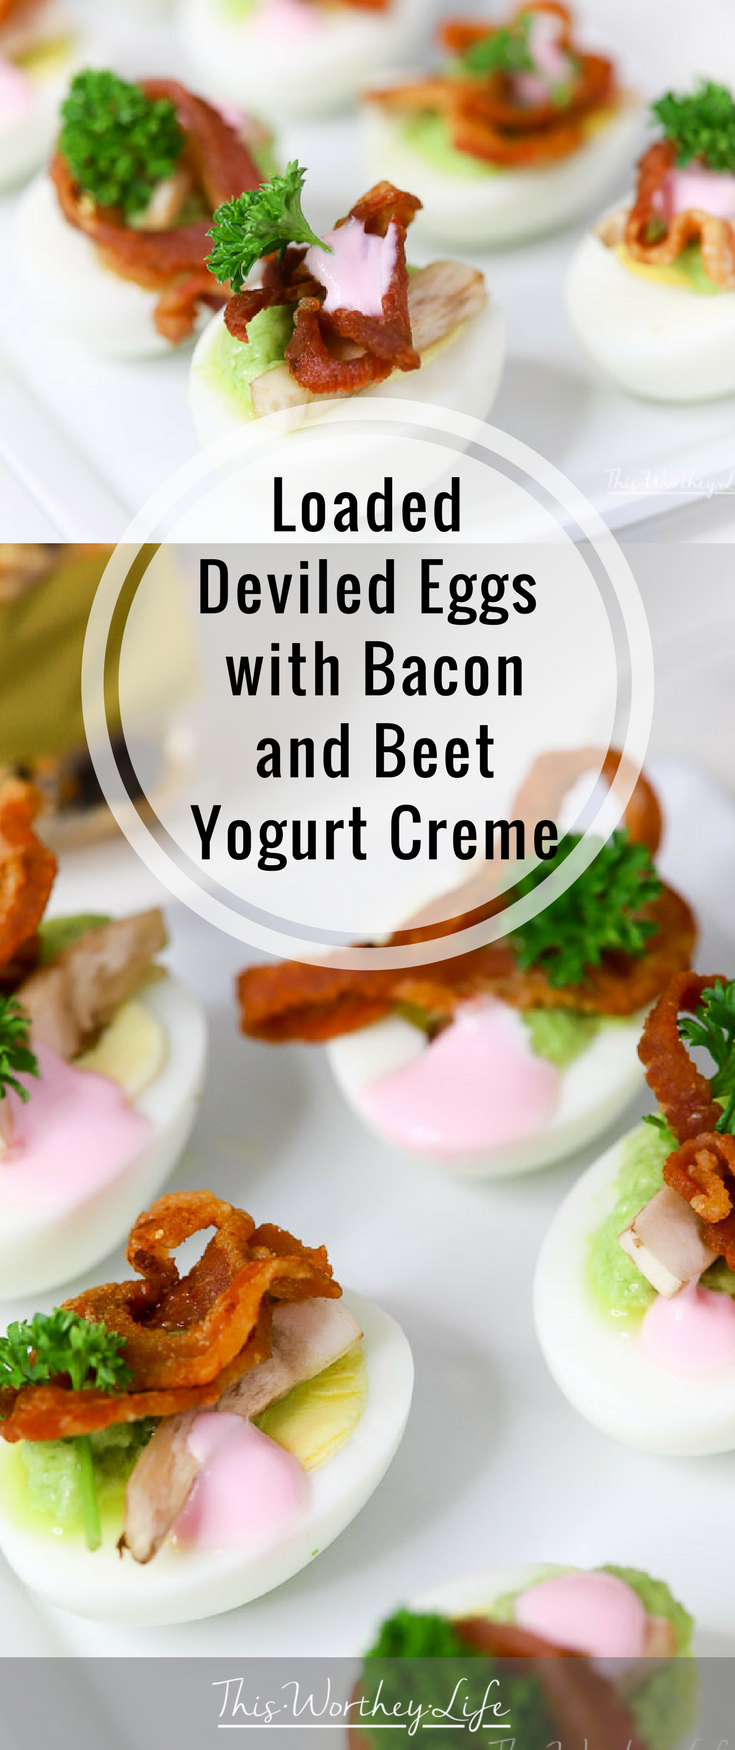 Deviled eggs are great for any type of party. Game day, holiday parties, summer picnics and cook-outs, our loaded deviled eggs recipe will be a big hit. With bacon, a unique beet yogurt creme, grab this recipe on the blog- Loaded Deviled Eggs with Bacon with Beet Yogurt Creme